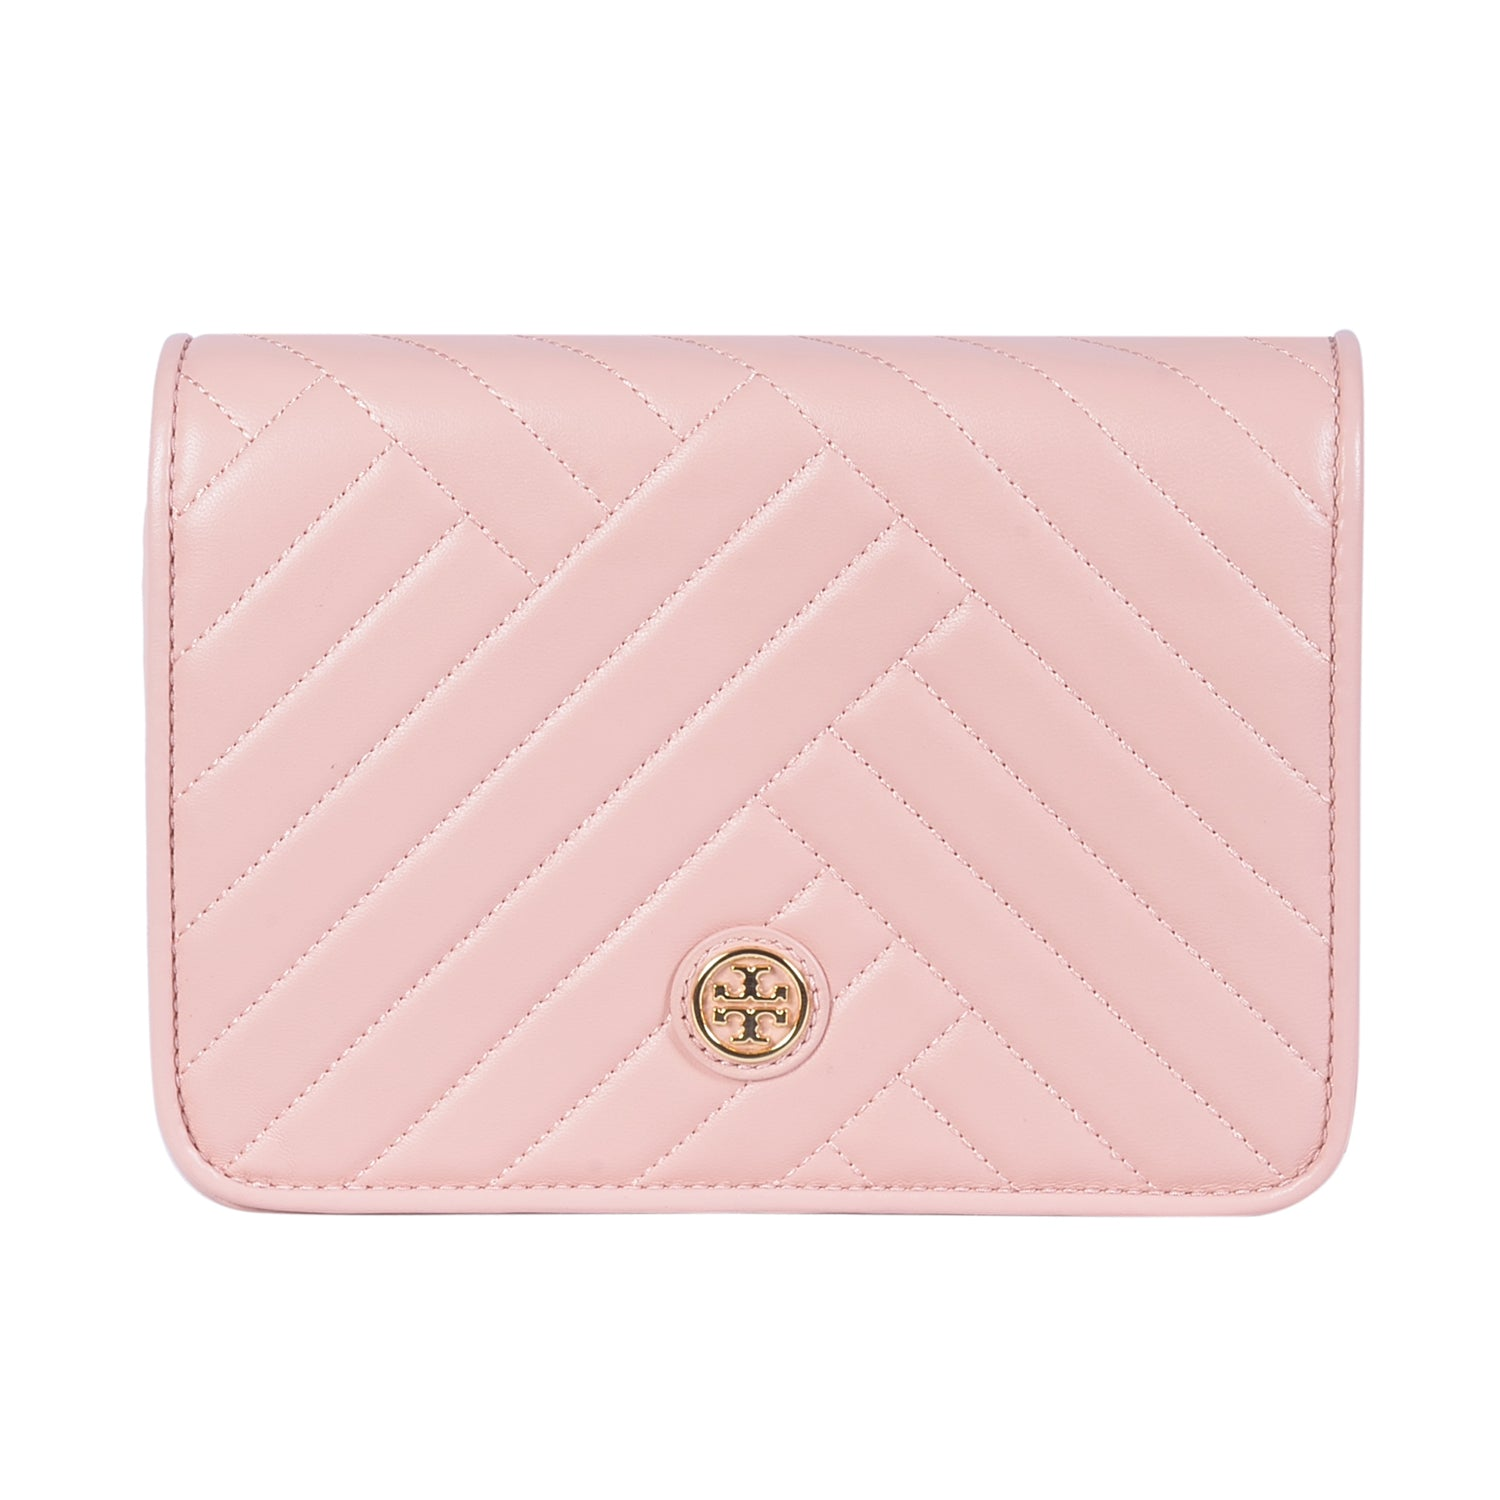 TORY BURCH ALEXA COMBO PINK LEATHER CROSS BODY BAG